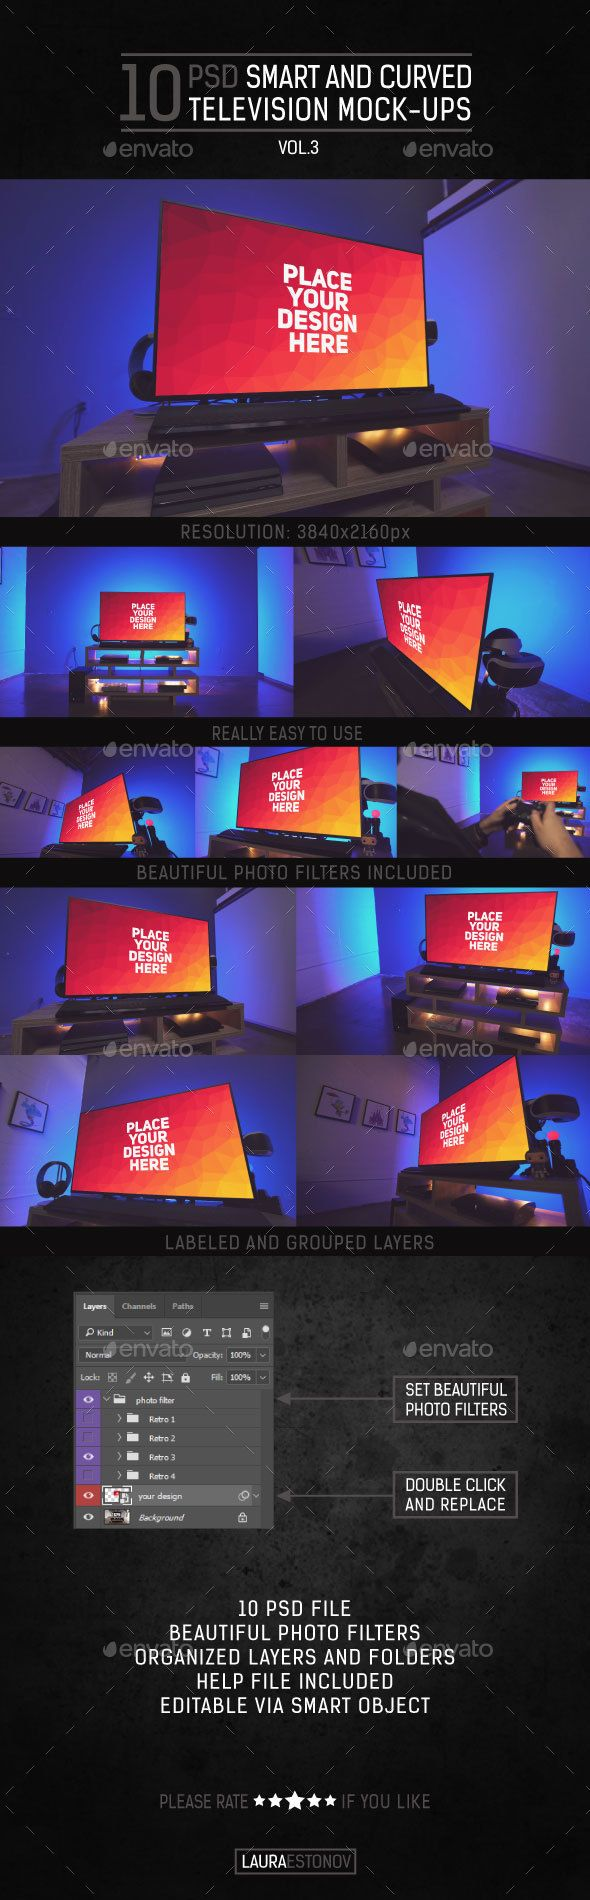 Smart and Curved Television Mock-ups